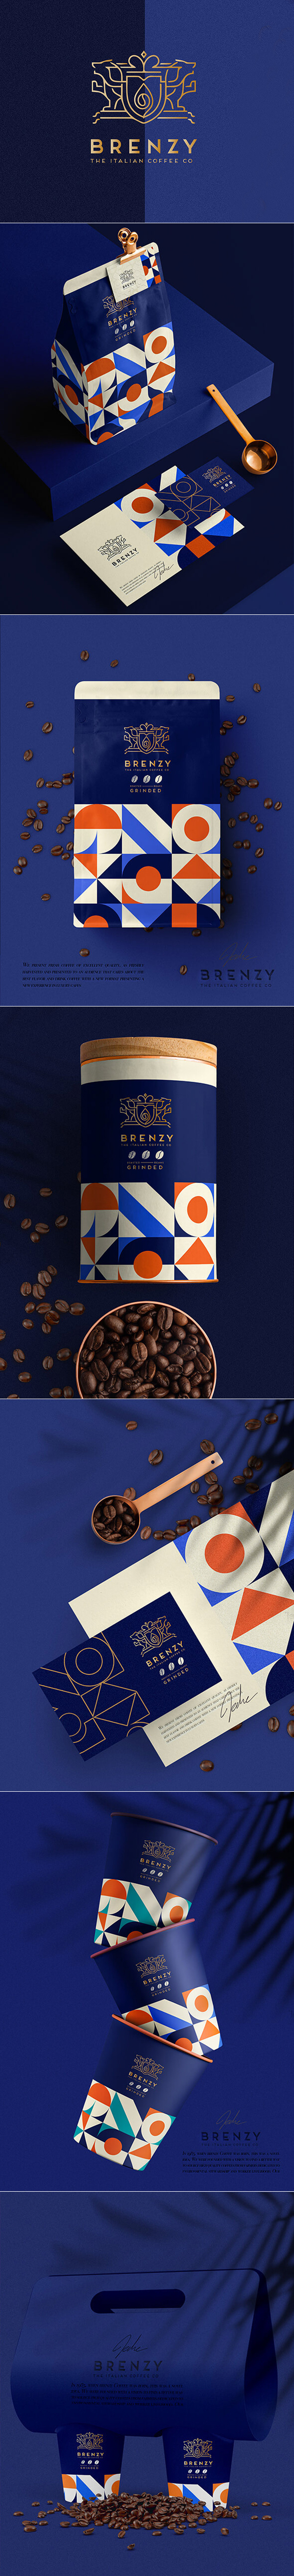 Brenzy Italian coffee UK Brand by MINA ESHAK